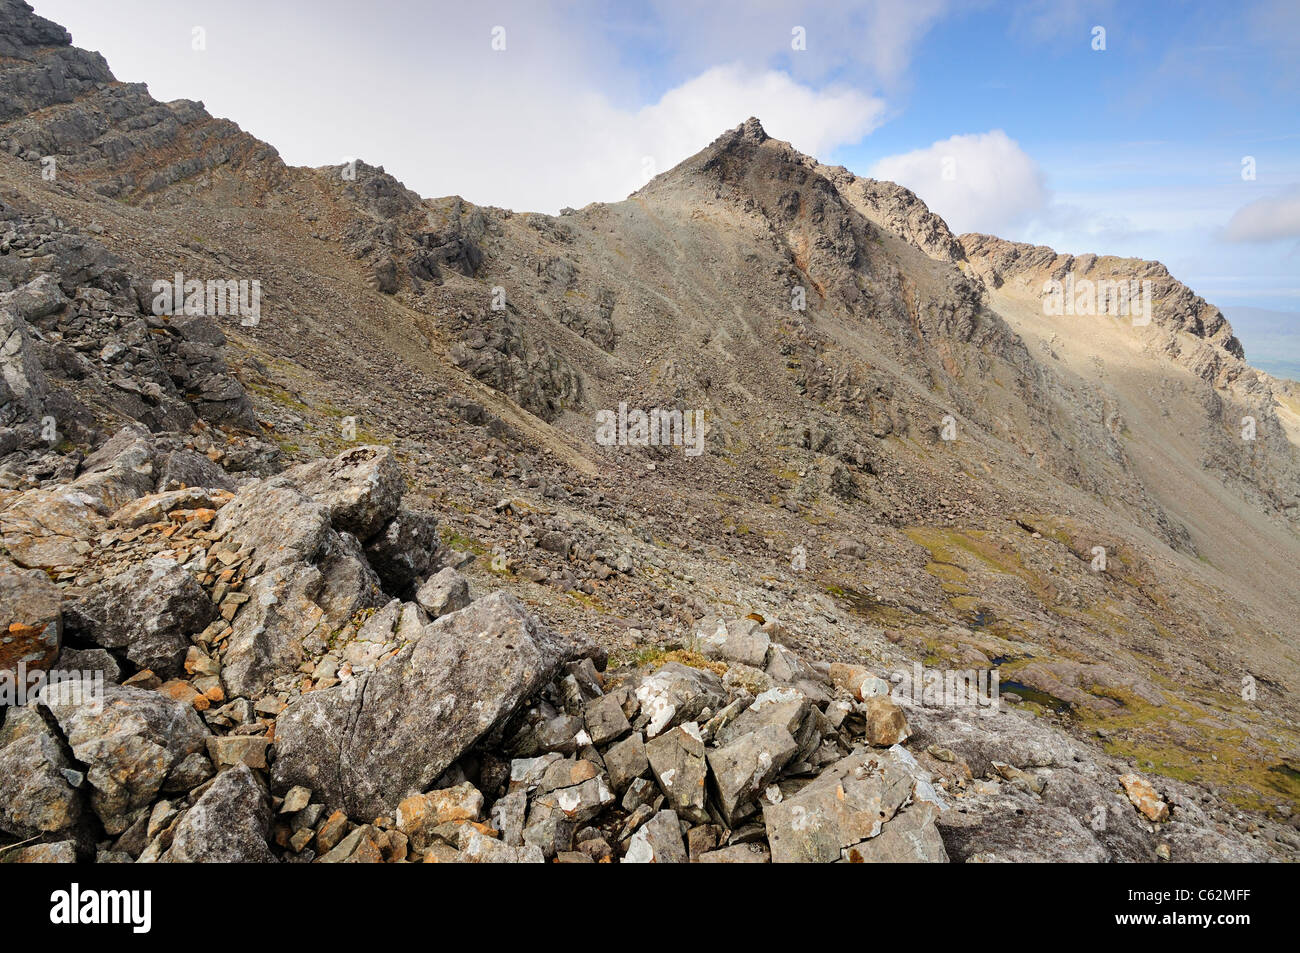 View towards the summit of Bruach na Frithe from the Bealach nan Lice, Black Cuillin mountains, Isle of Skye, Scotland - Stock Image